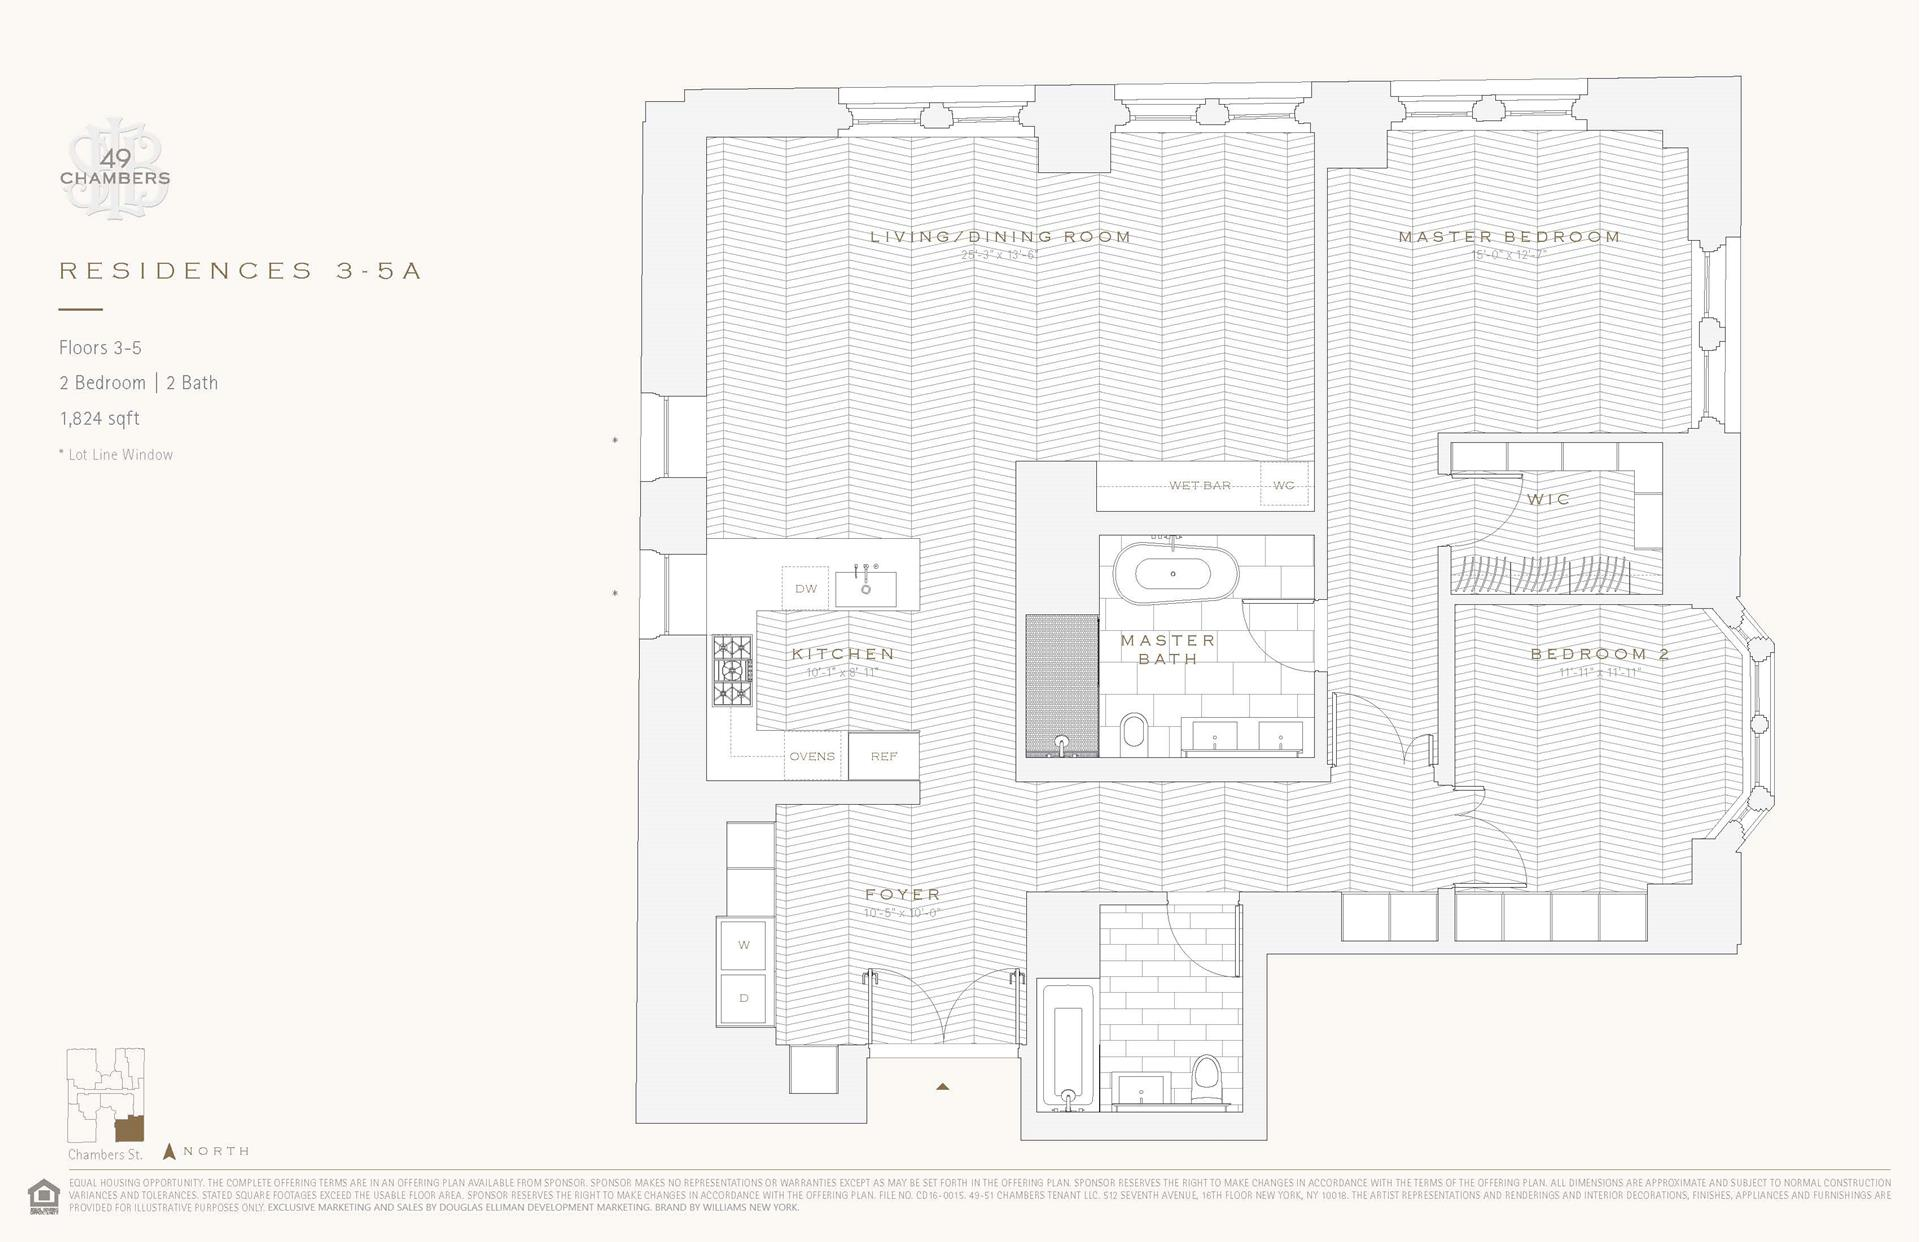 Floor plan of 49 Chambers St, 3A - TriBeCa, New York